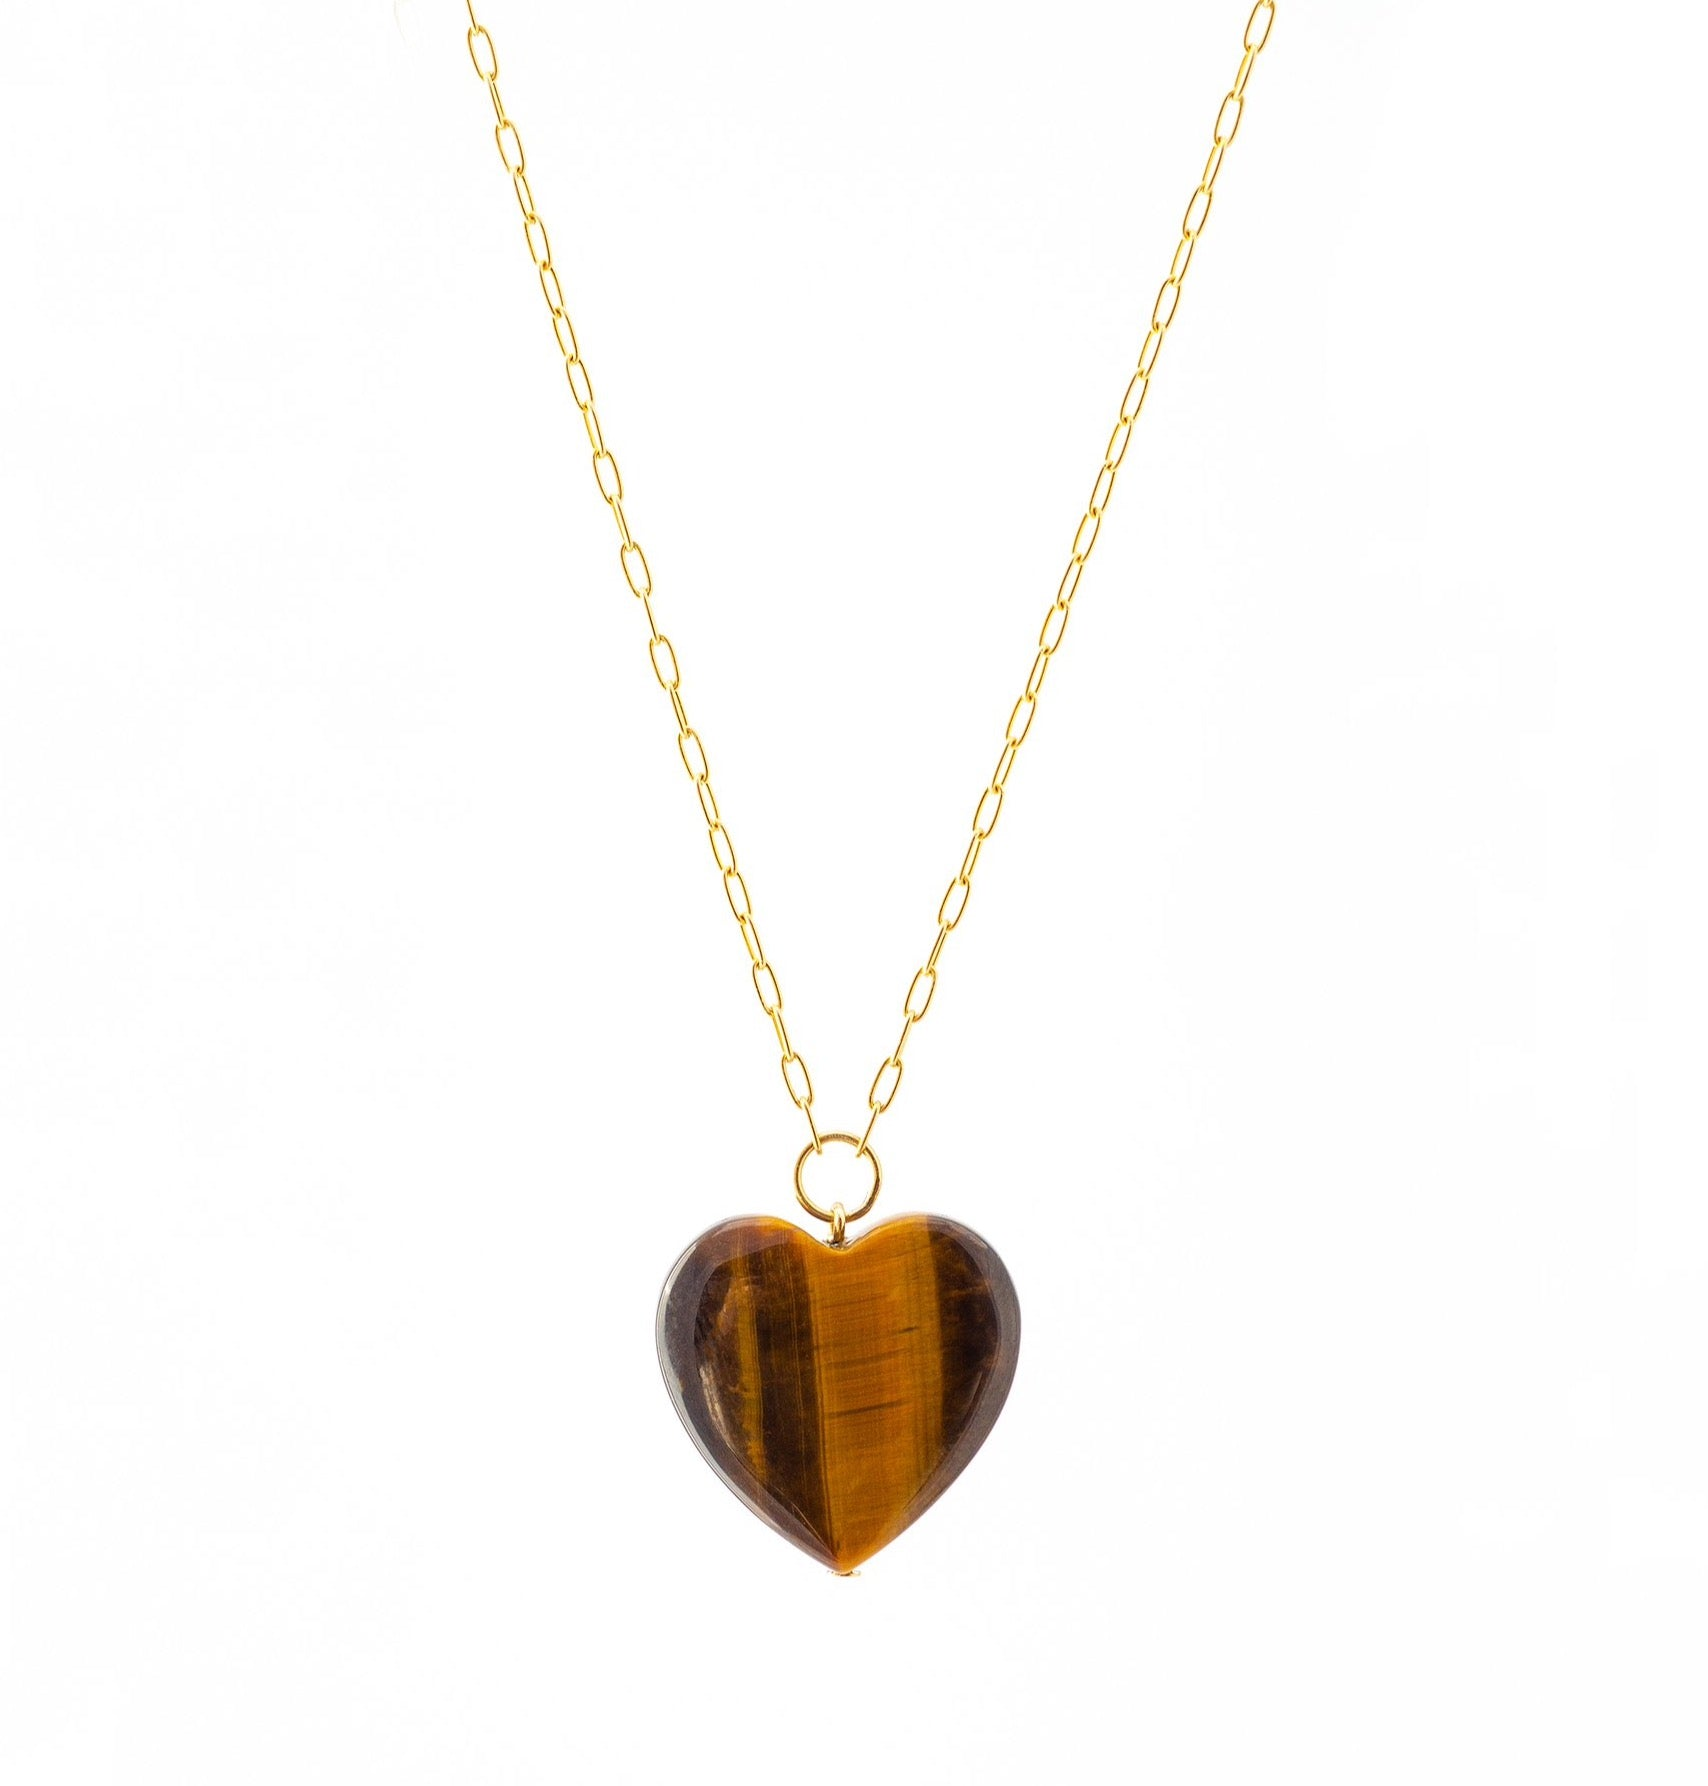 Tiger's Eye Heart Pendant on Gold Chain